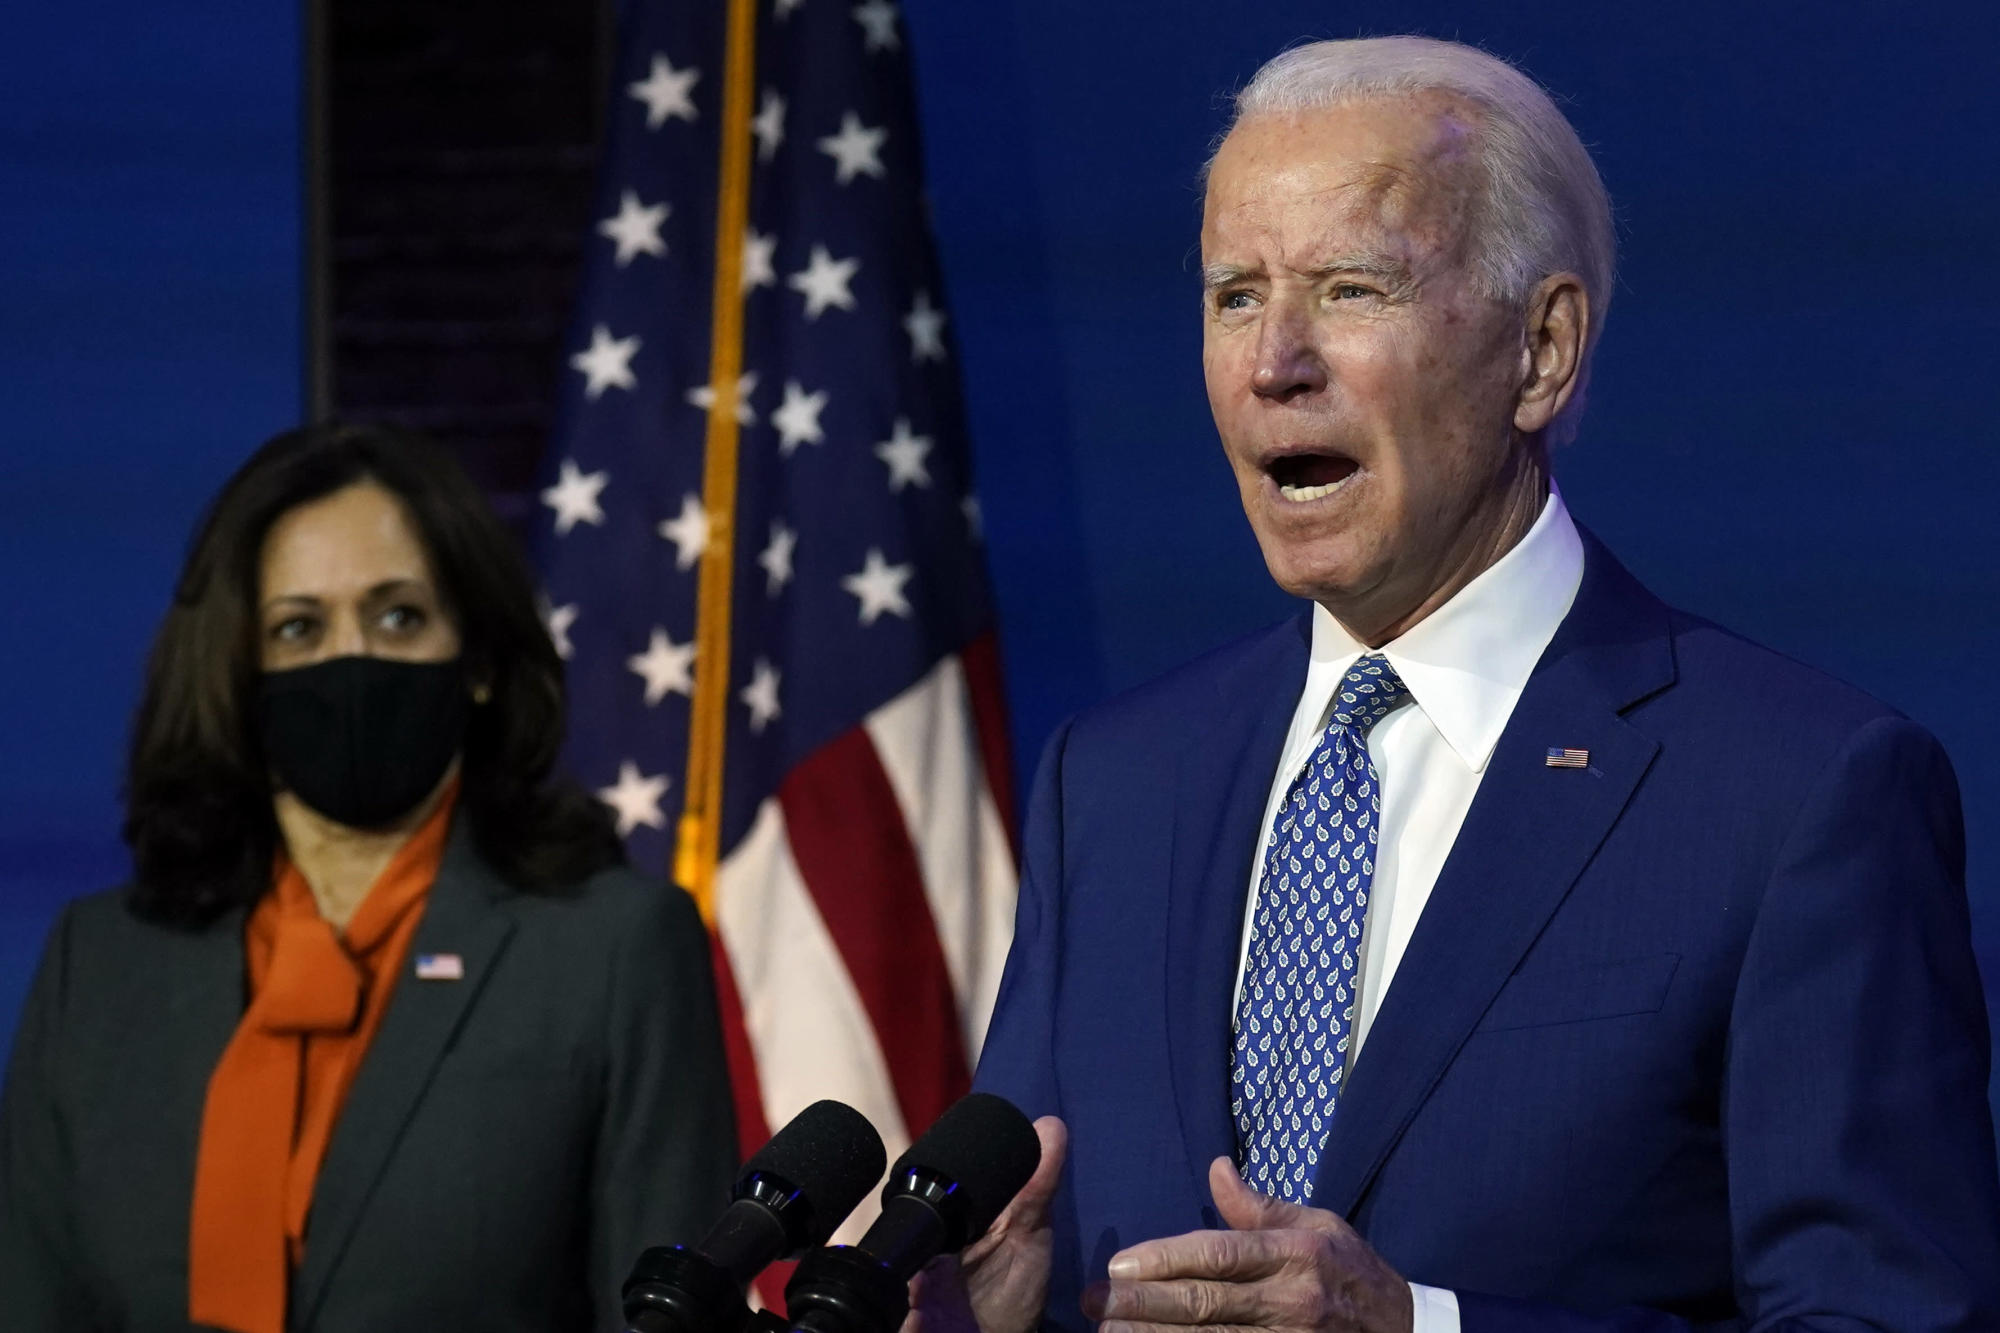 Biden defends health care law as high court mulls its fate